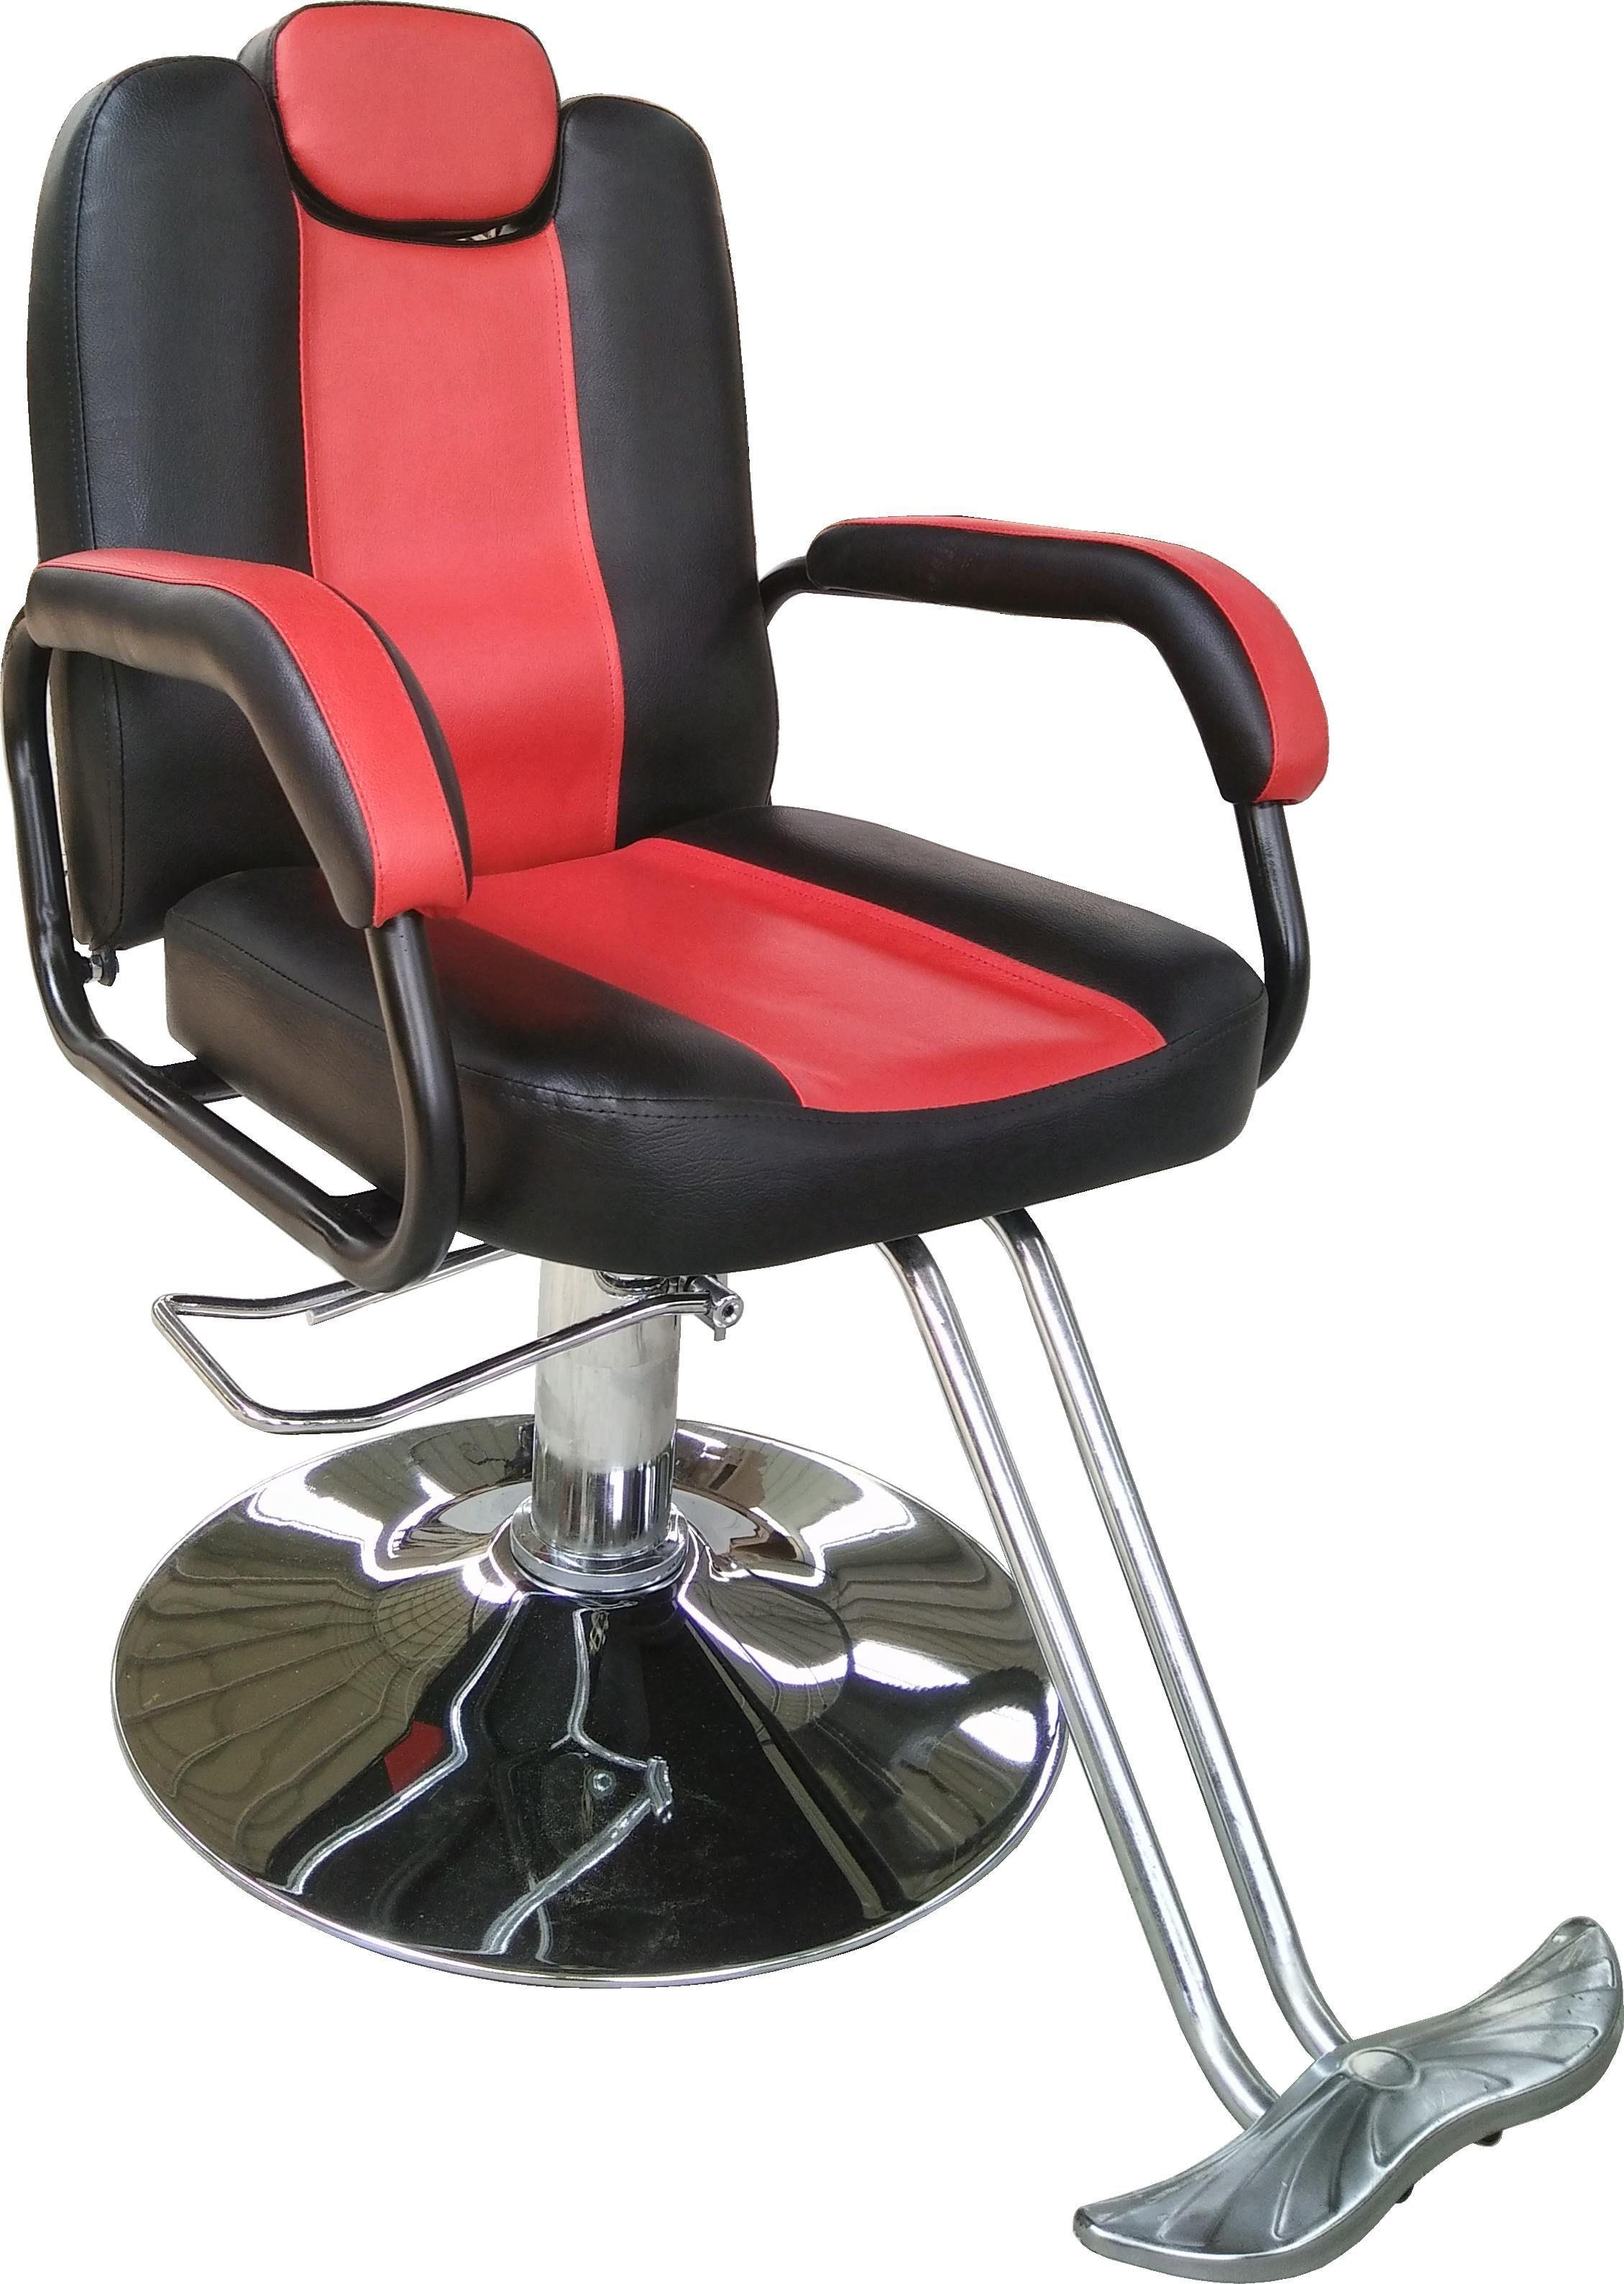 used barber chairs for cheap chair rentals jacksonville fl online get barbers aliexpress